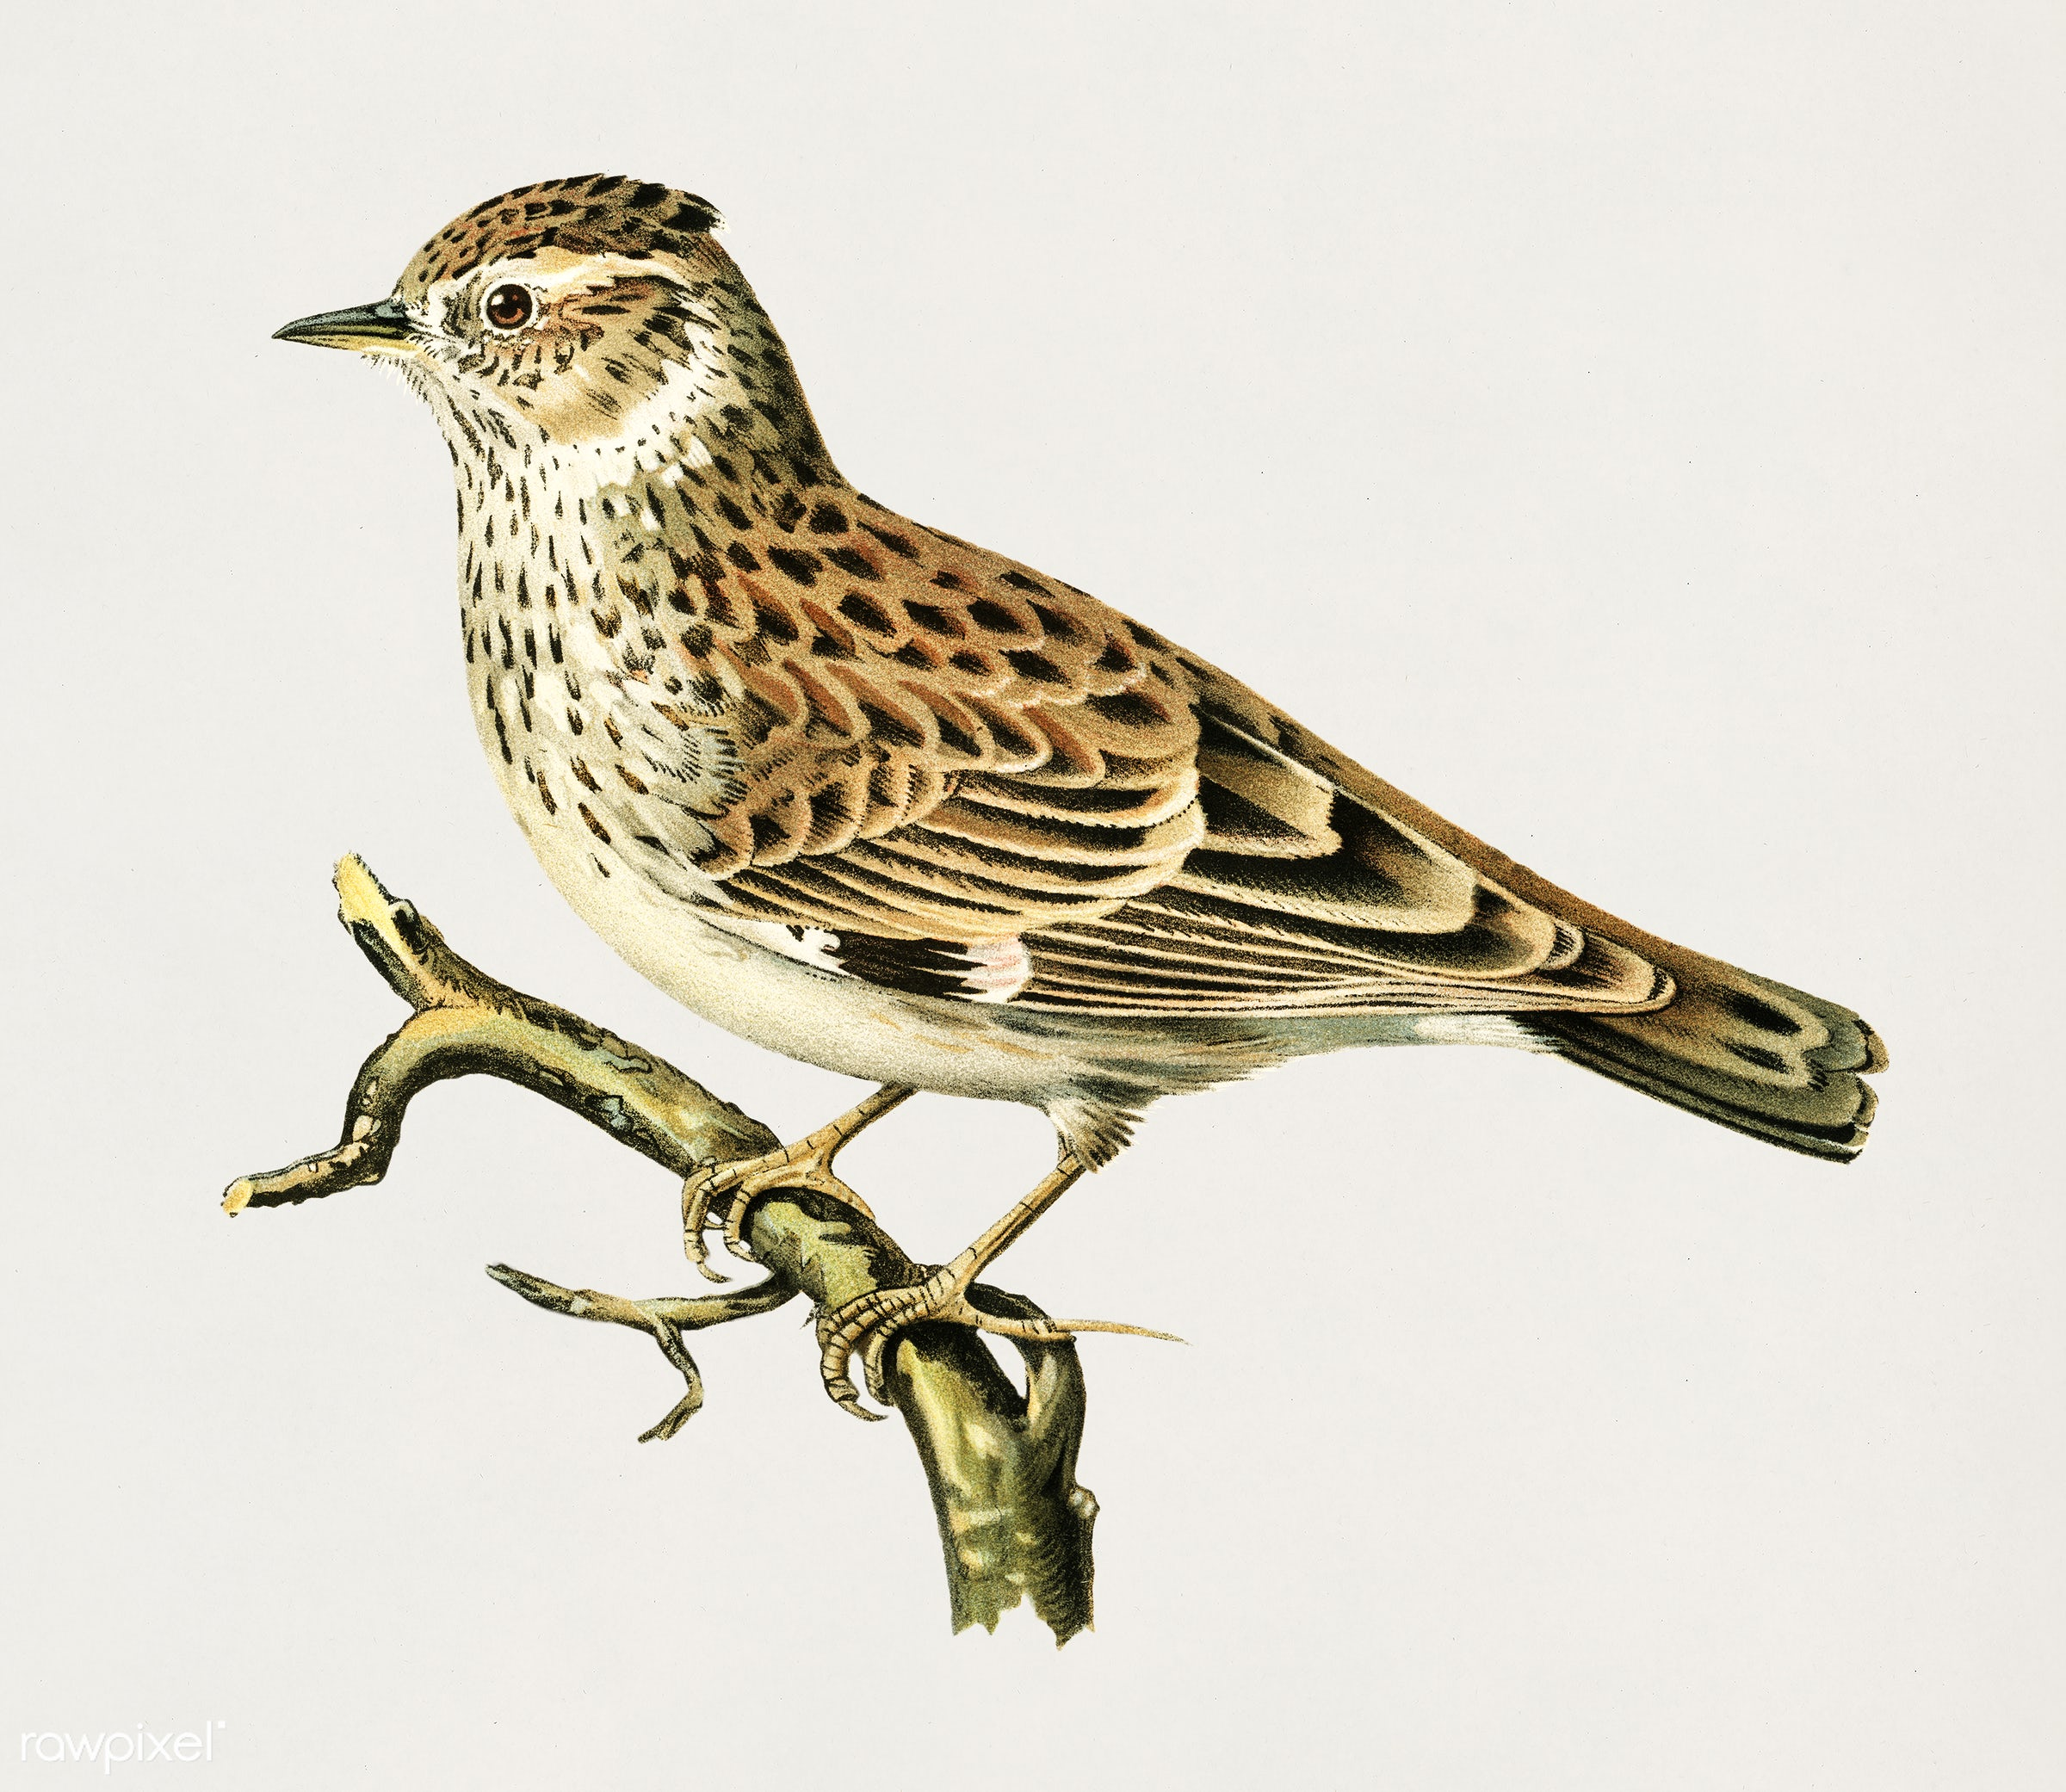 Woodlark (Lullula arborea) illustrated by the von Wright brothers. Digitally enhanced from our own 1929 folio version of...